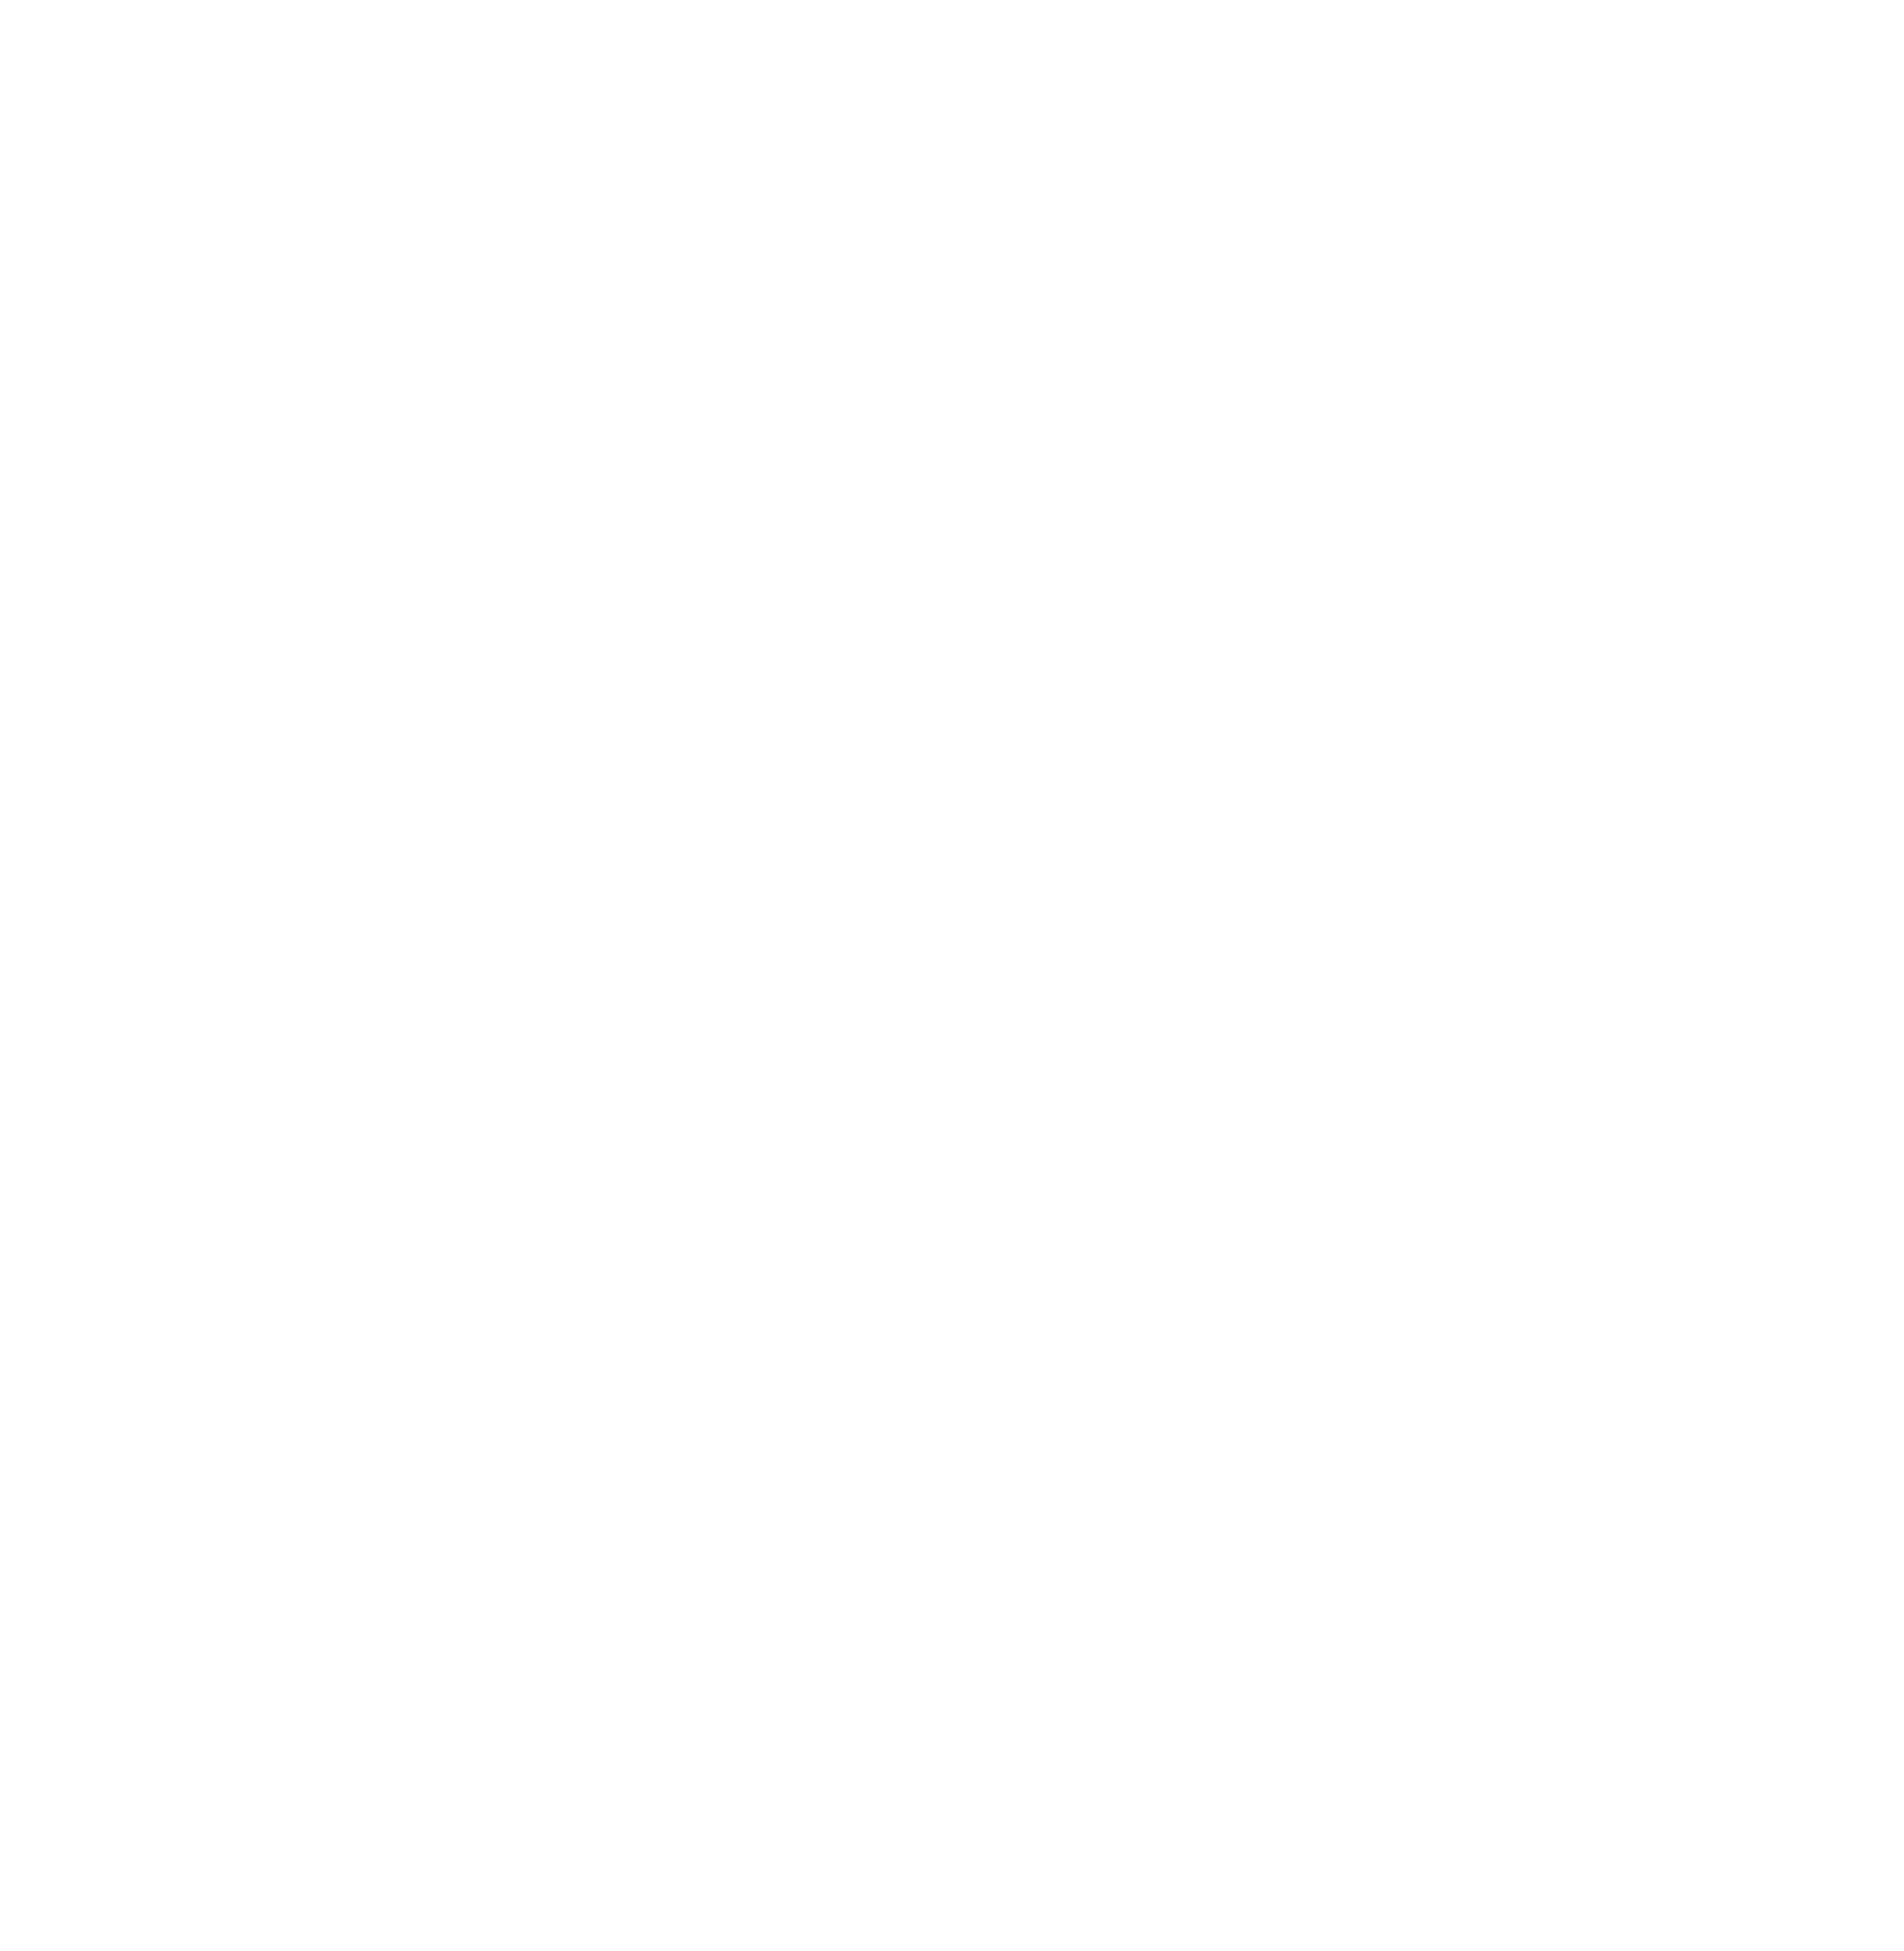 Single color or two color version of current logo